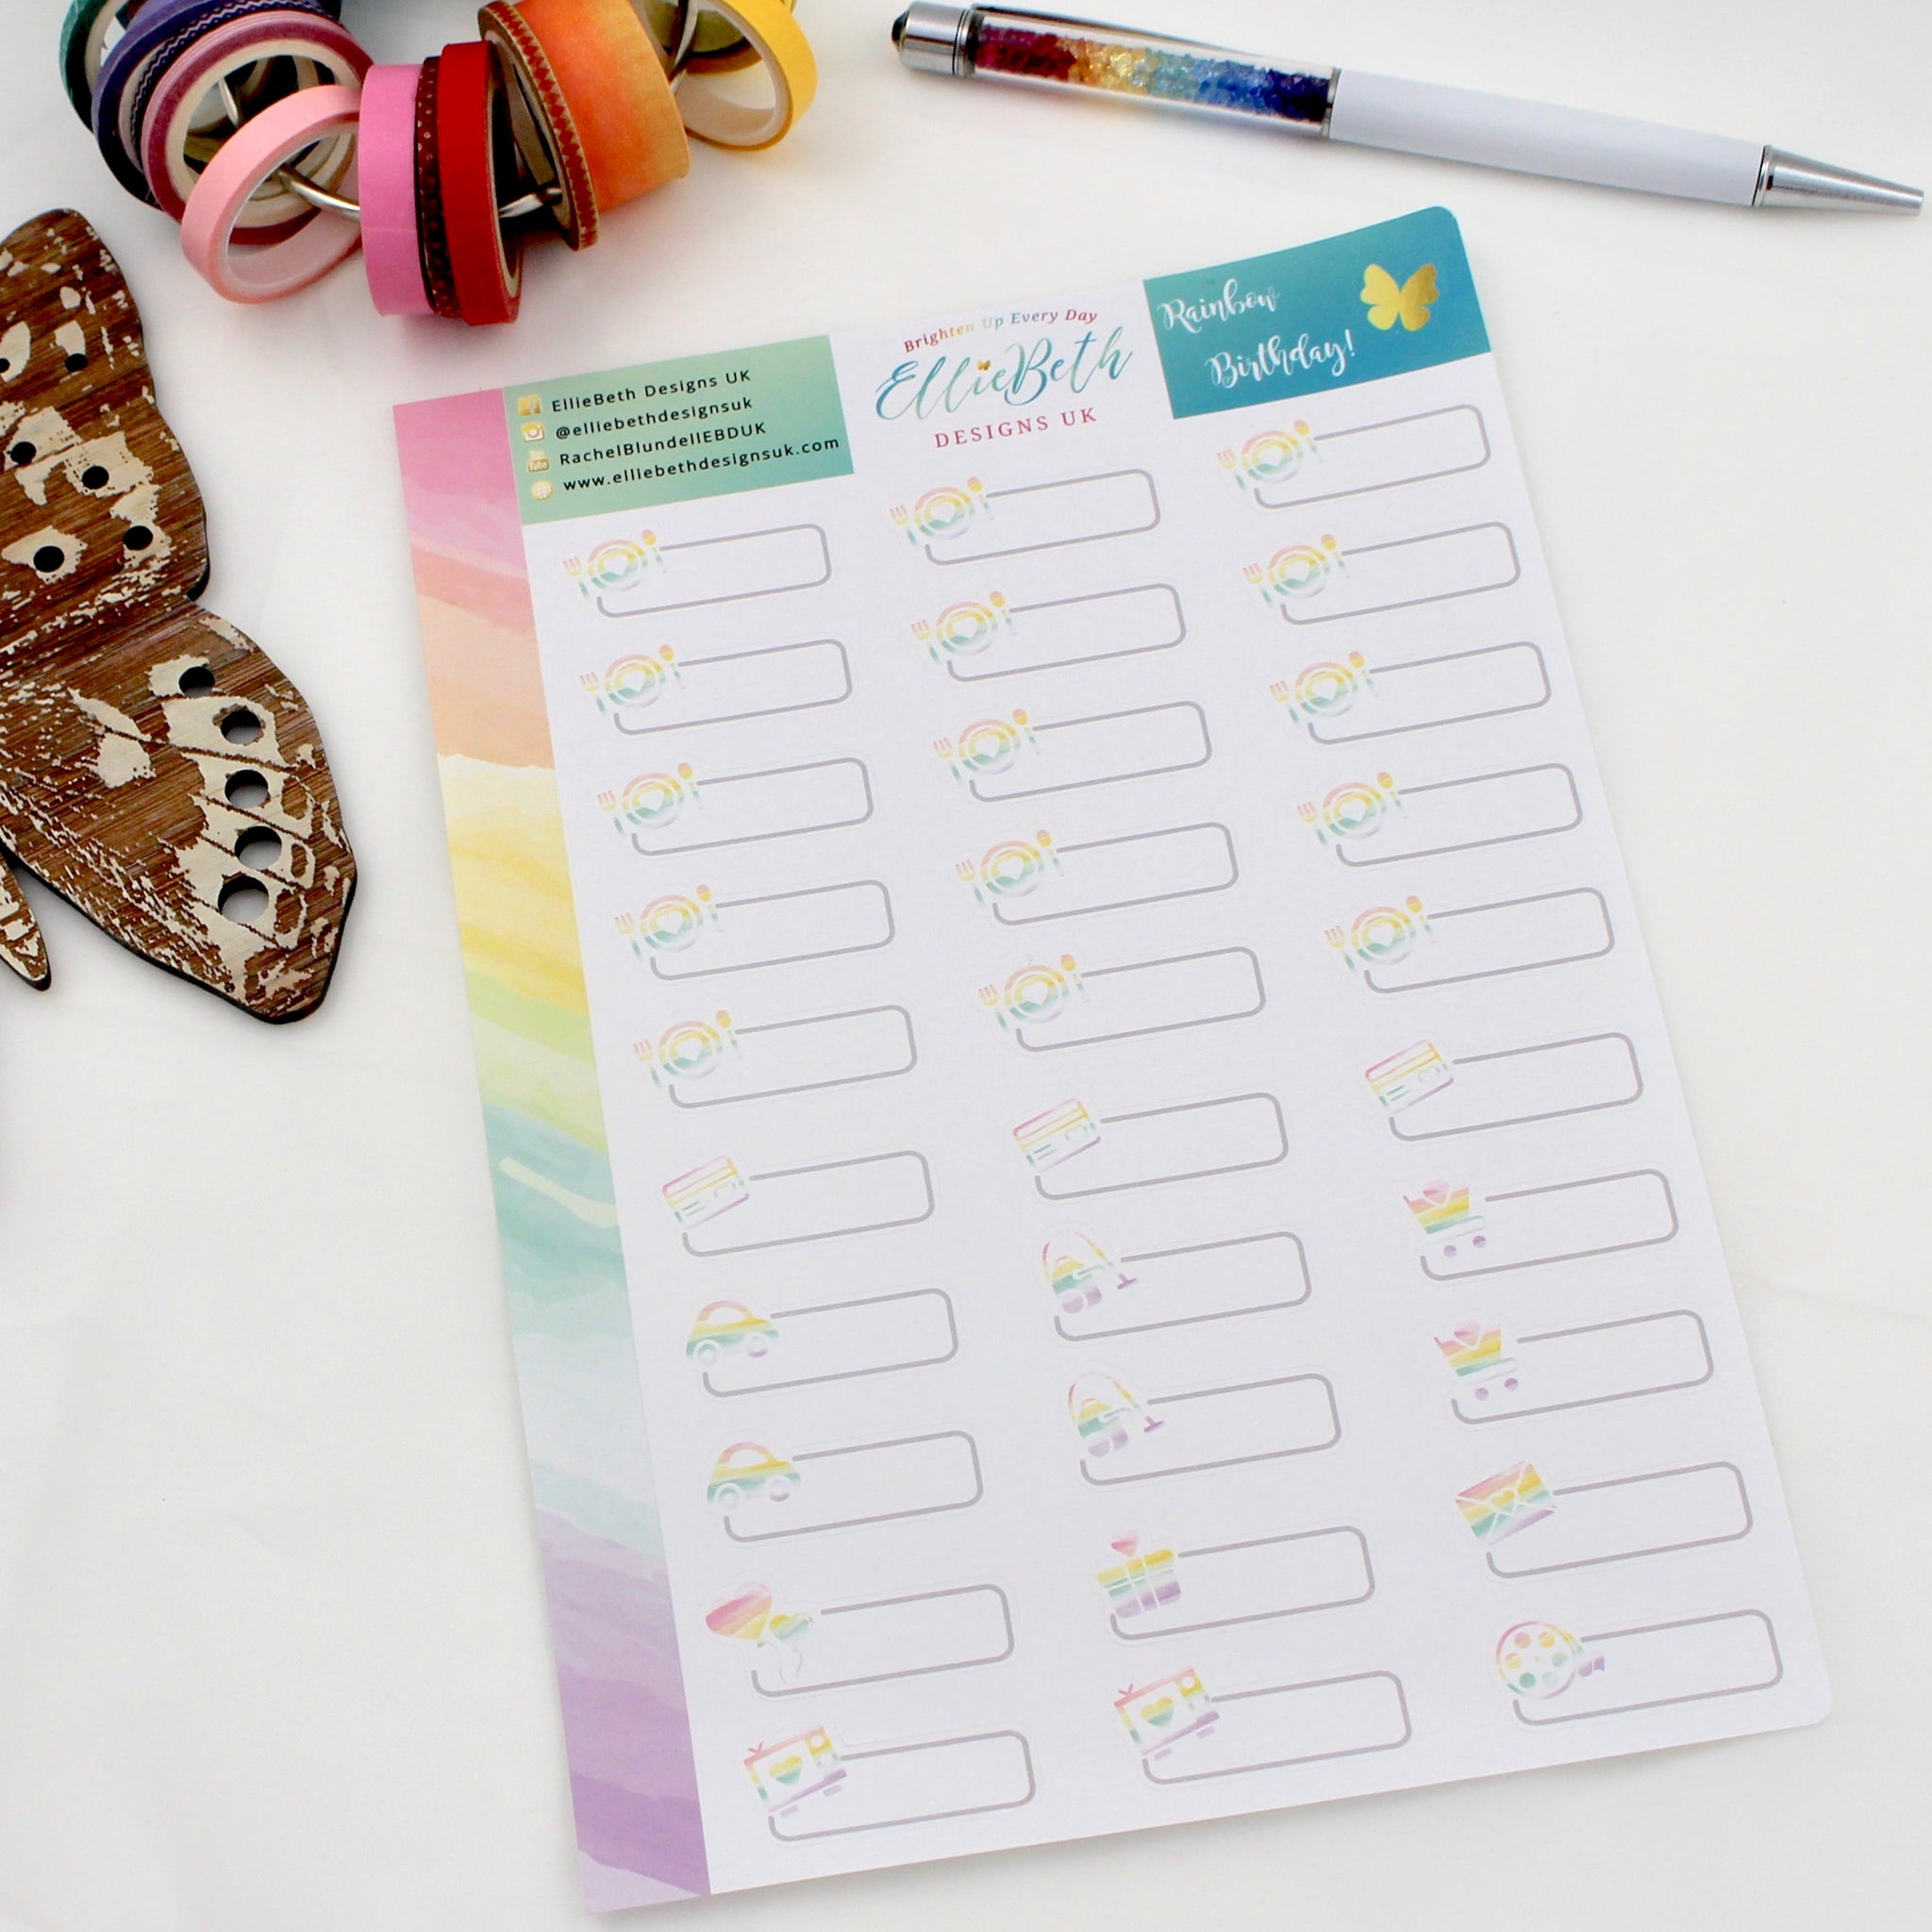 'Rainbow Birthday' - Day to Day Labels -  A5 binder ready planner stickers - EllieBeth Designs UK